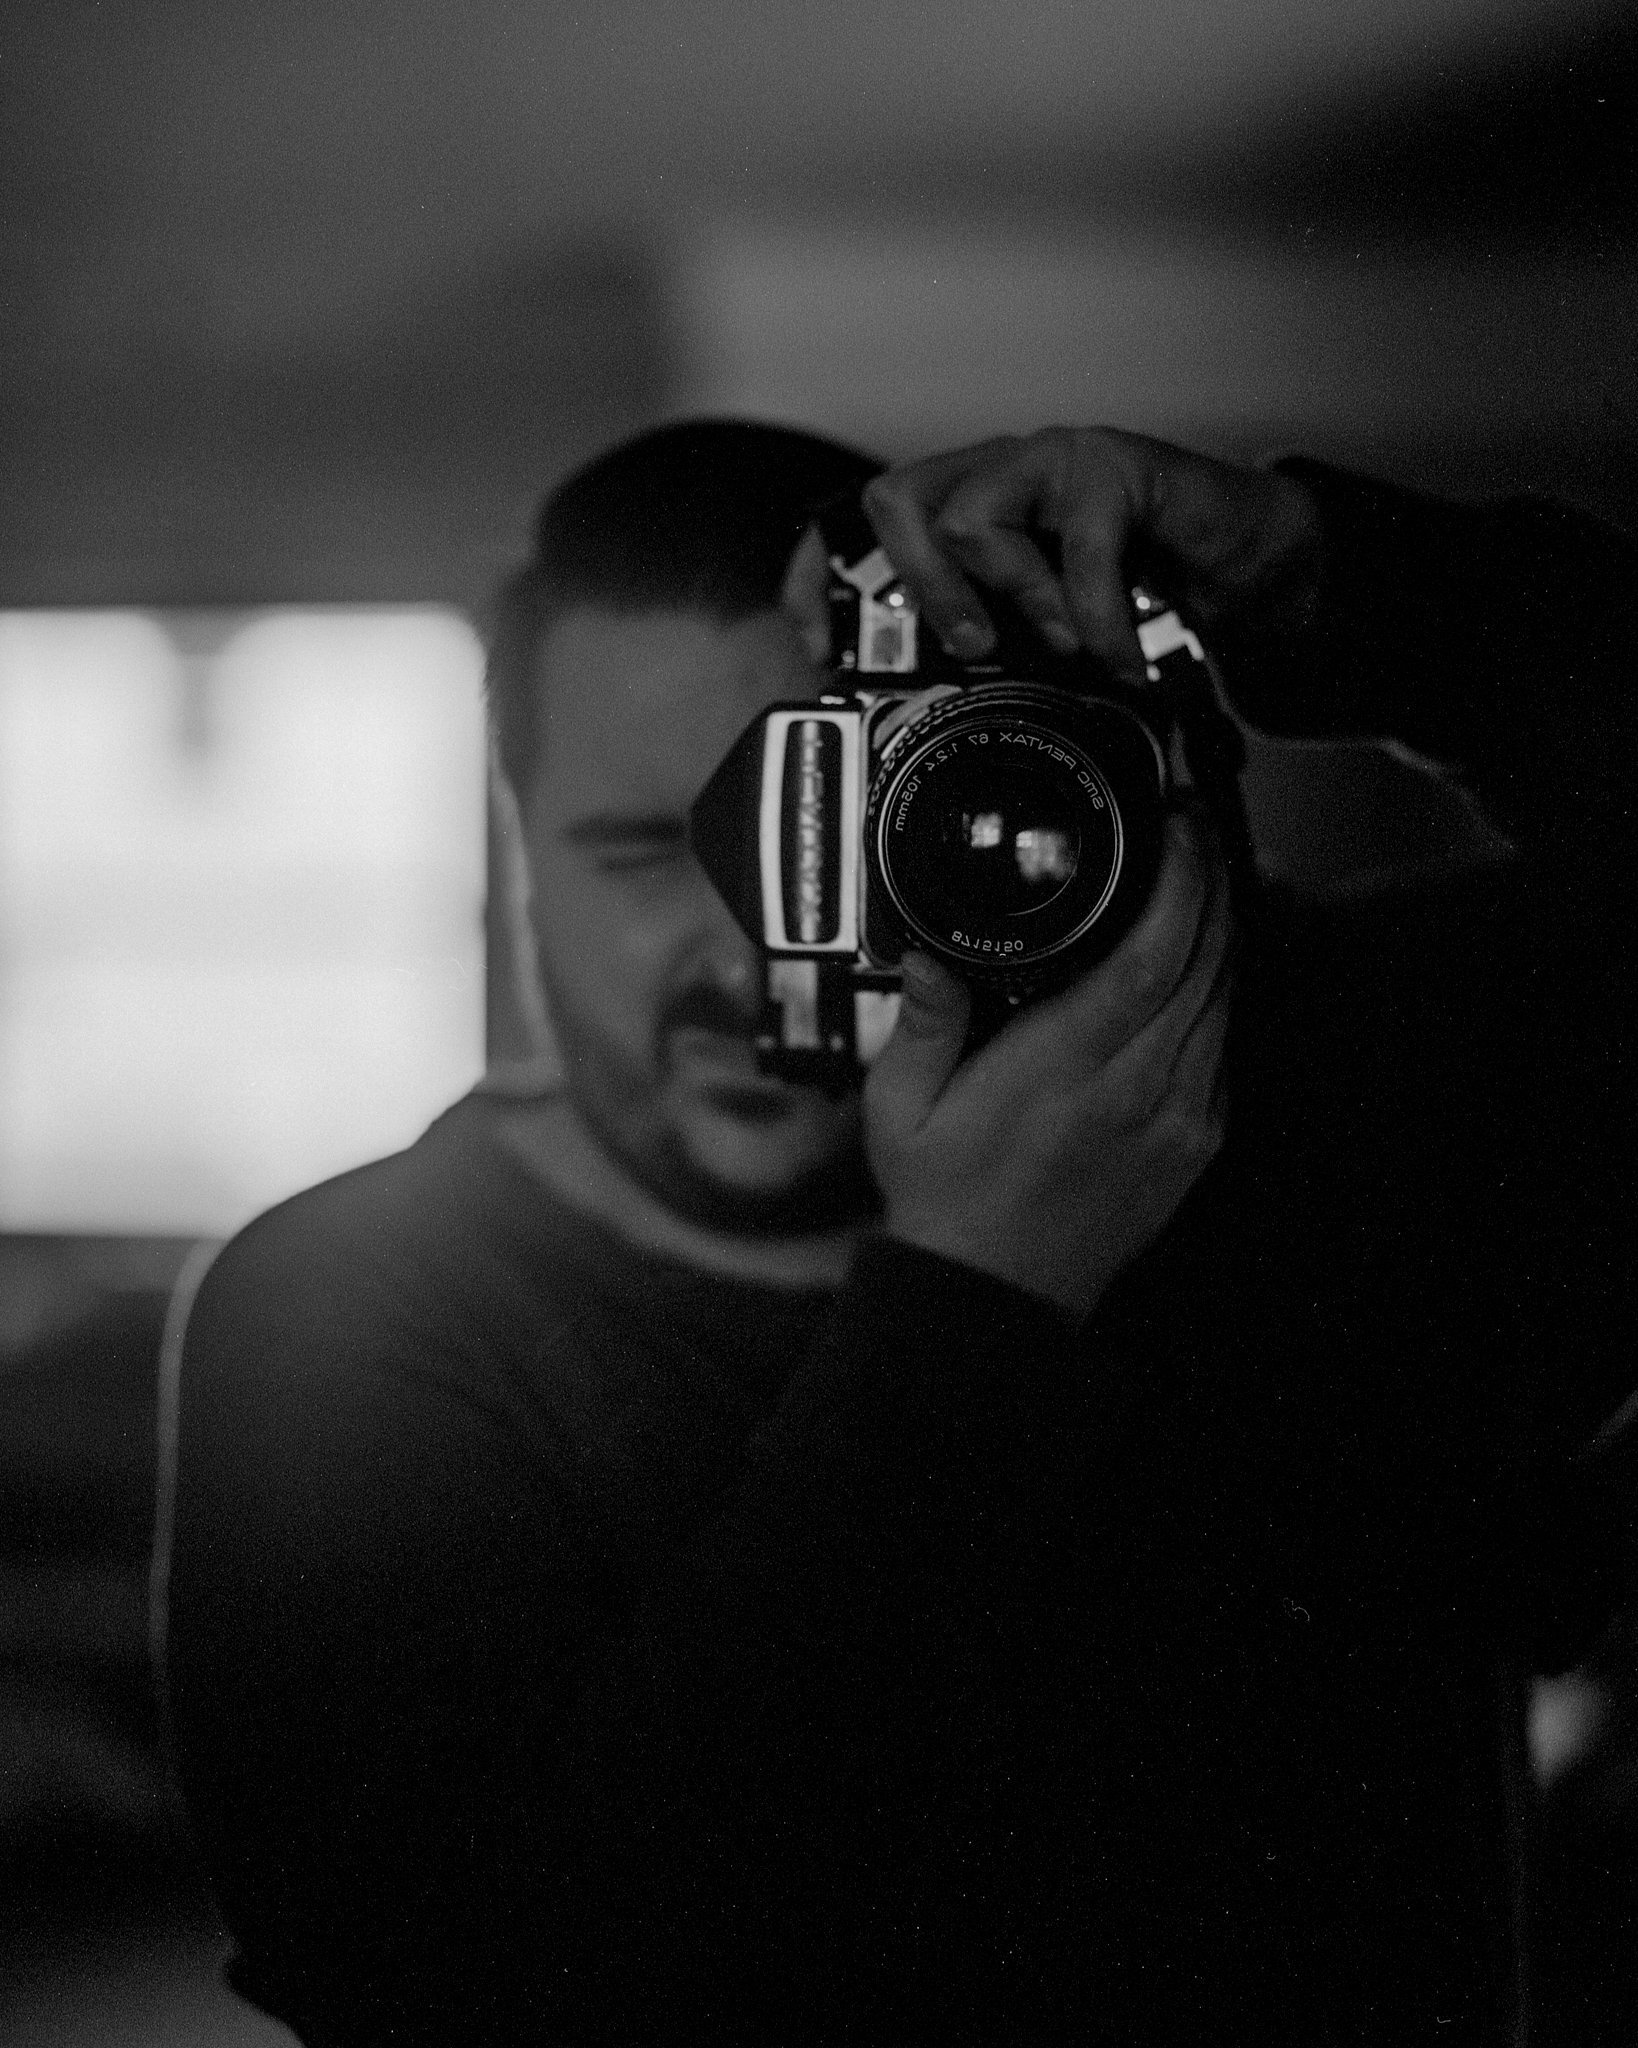 Mirror self portrait using the Pentax 6x7